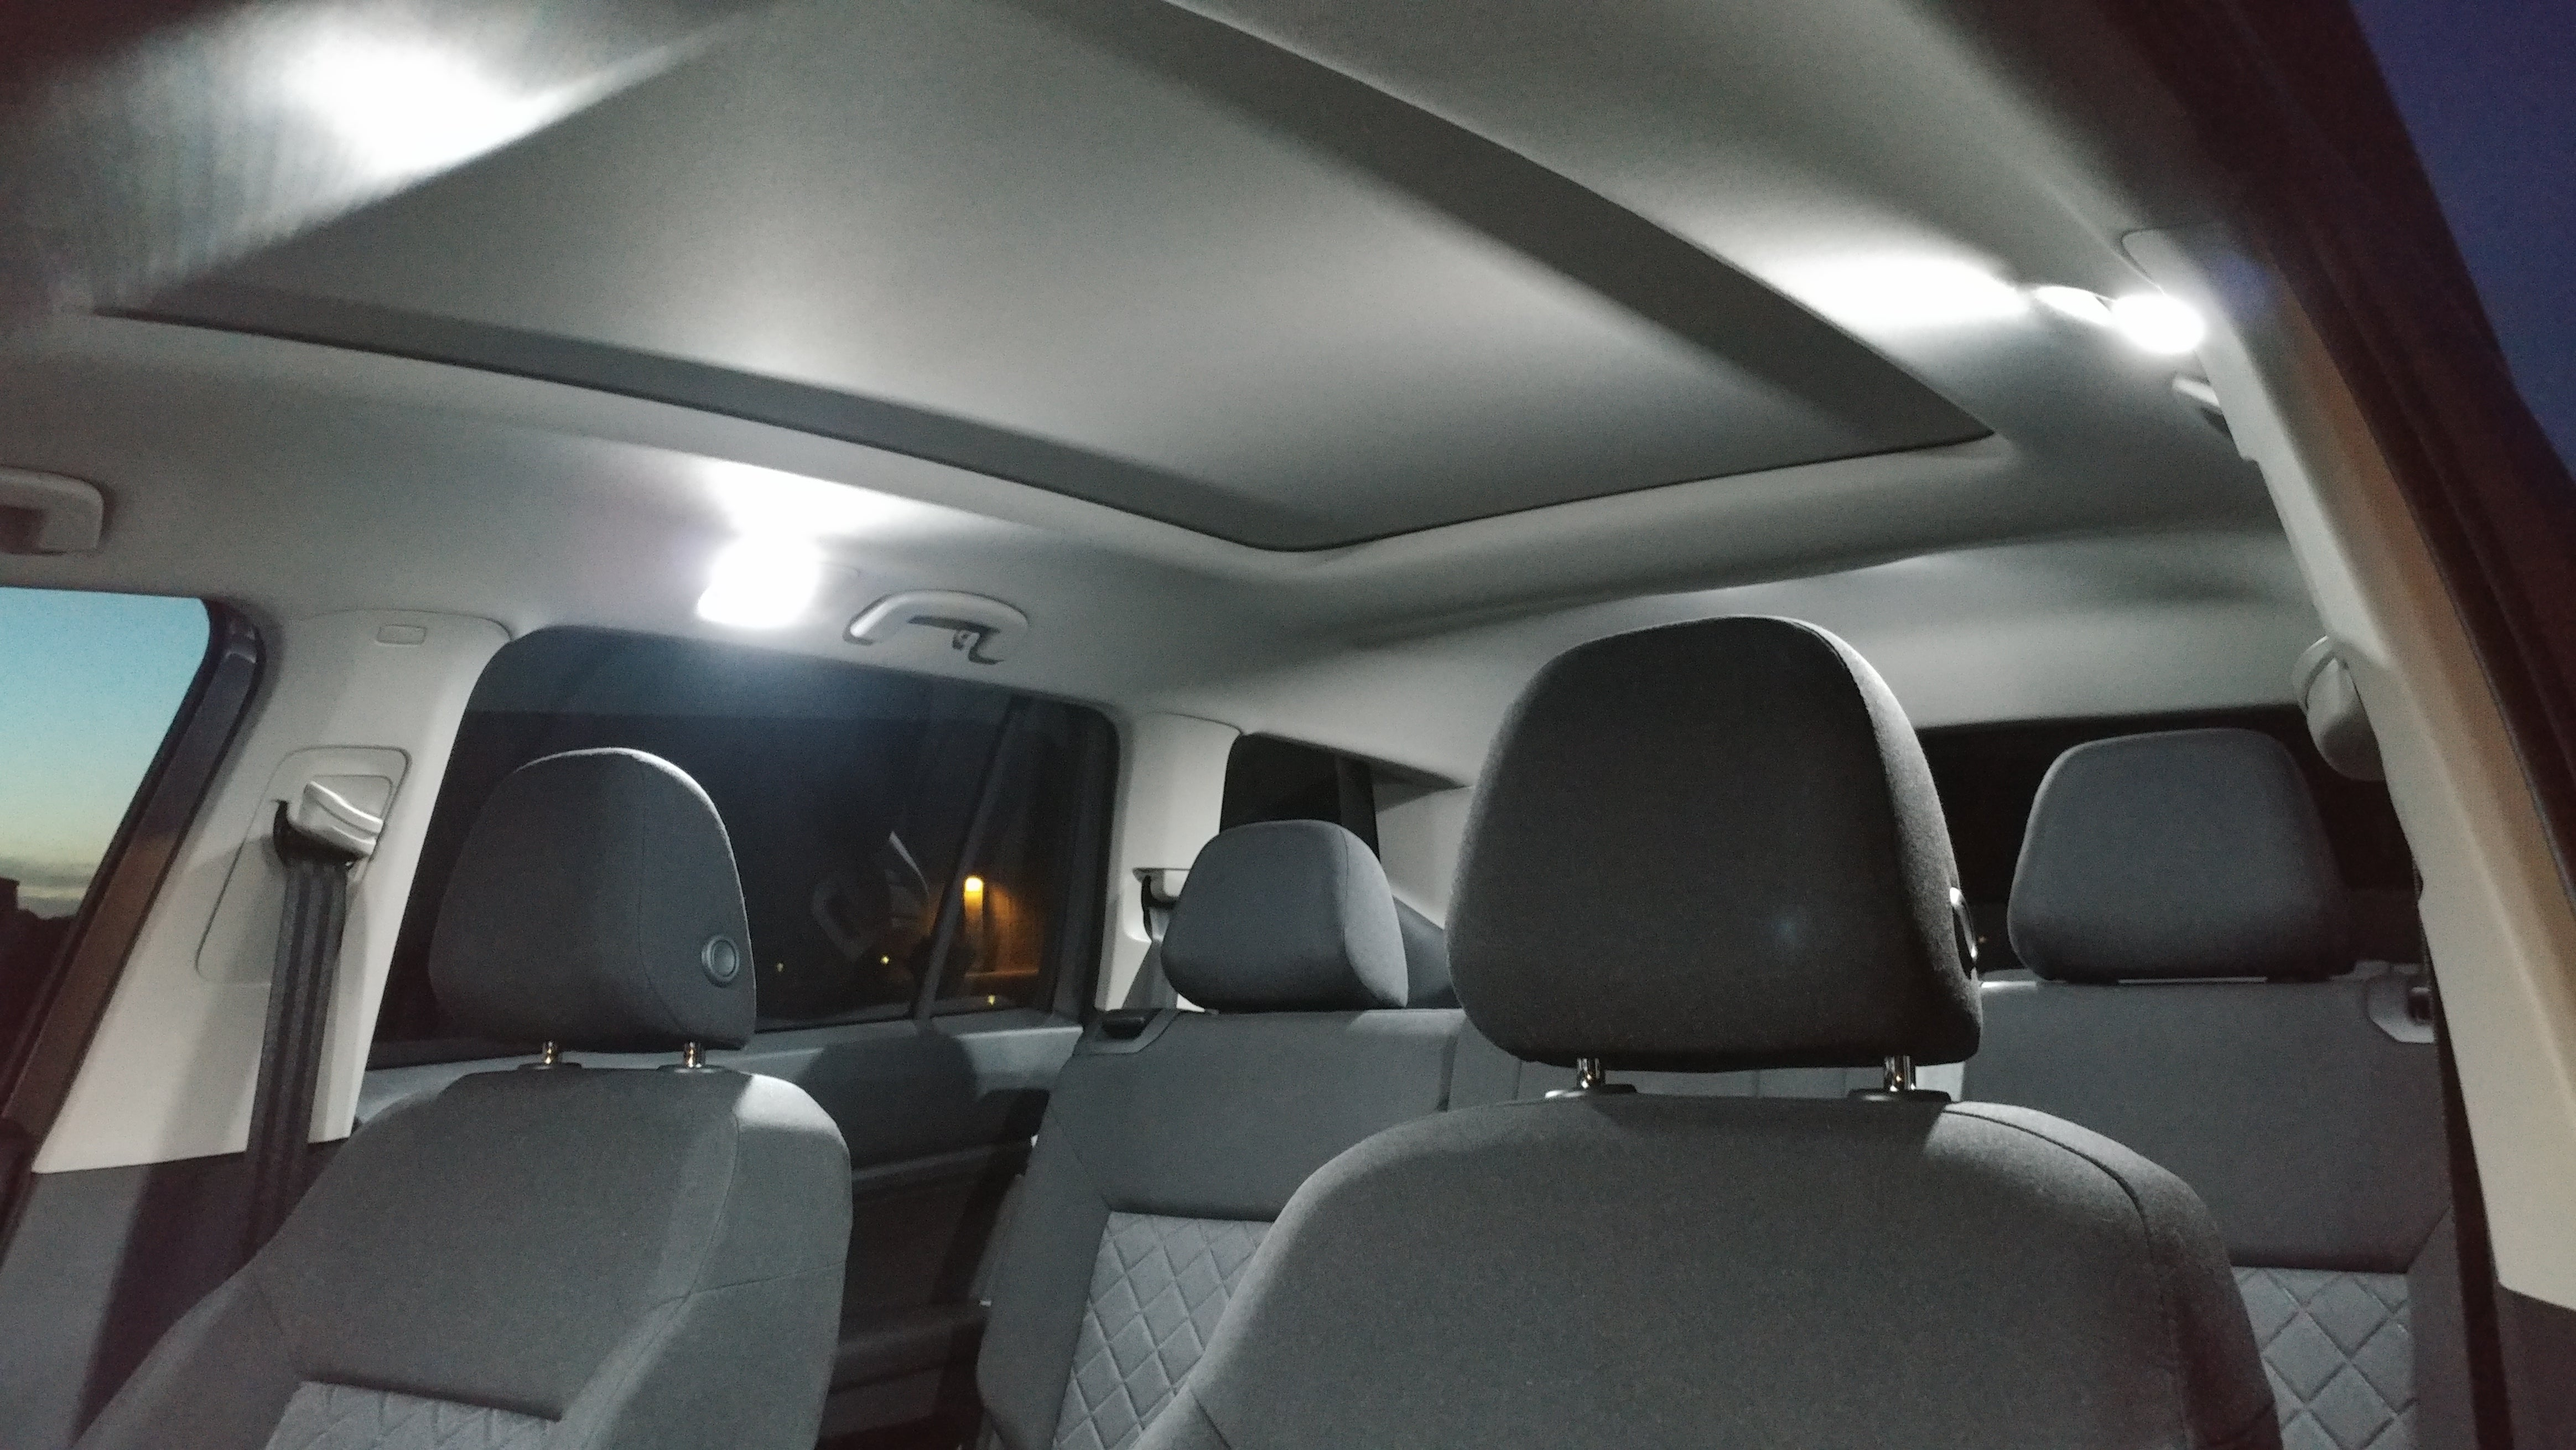 Complete Error Free Interior LED Kit fits: Volkswagen Atlas | deAutoKey